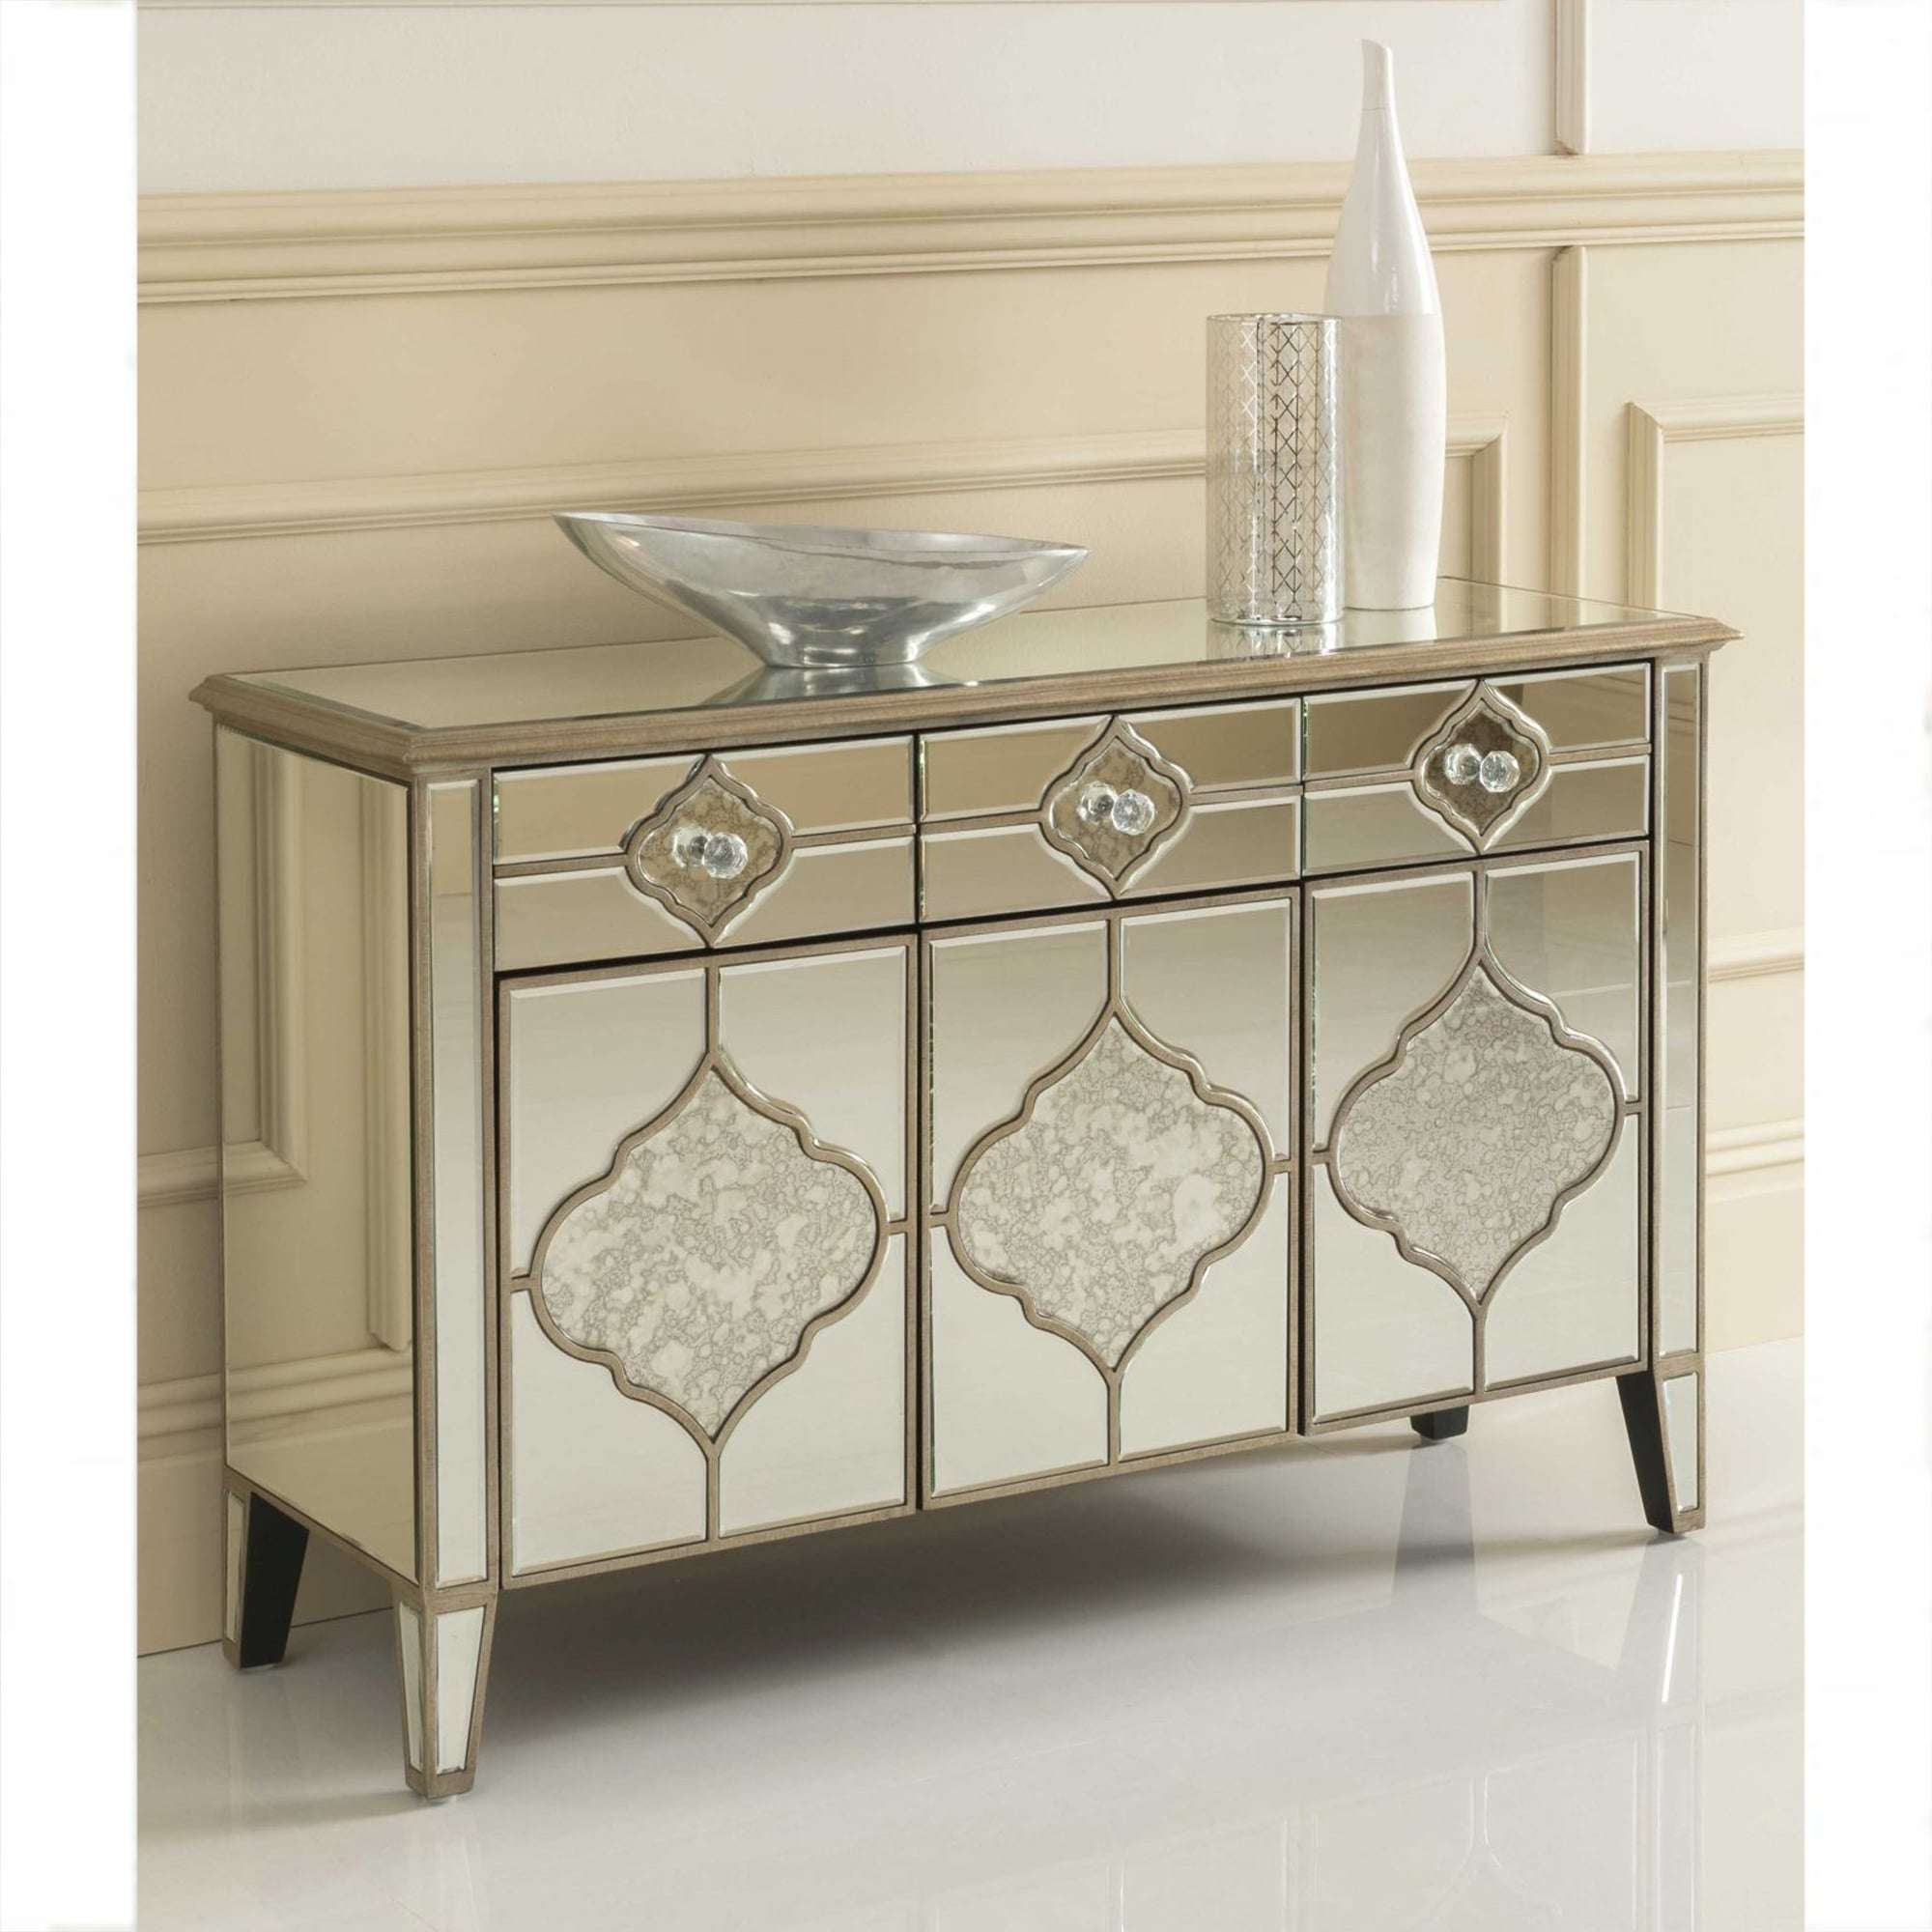 Sassari Mirrored Sideboard | Venetian Glass Furniture Inside Glass Sideboards (View 9 of 20)